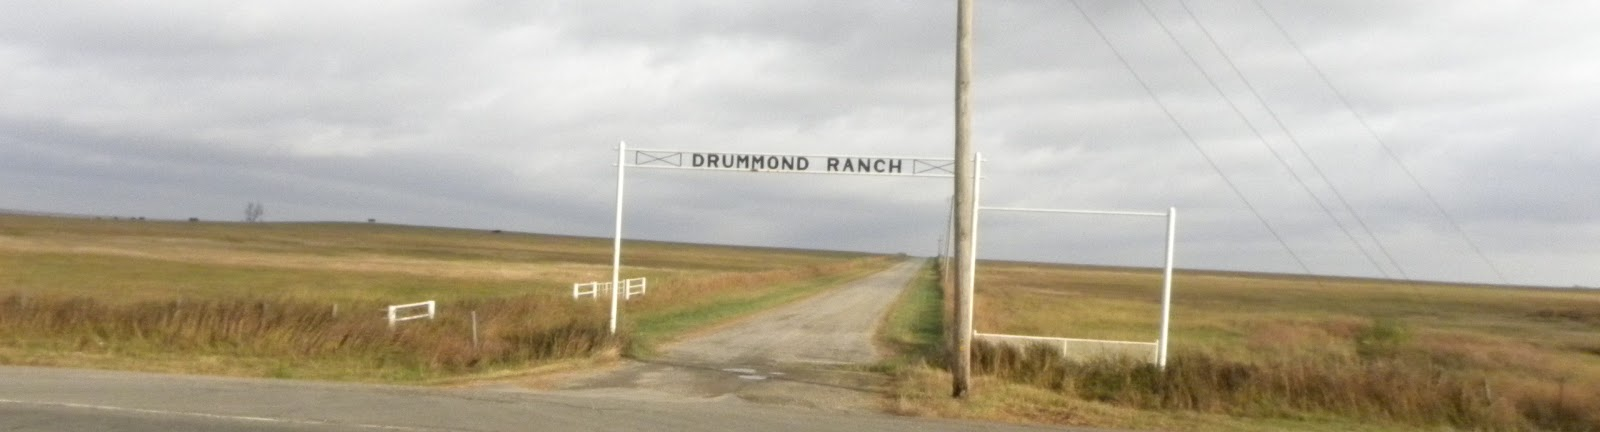 Drummond Ranch House Pawhuska Ok The home of ree drummond,